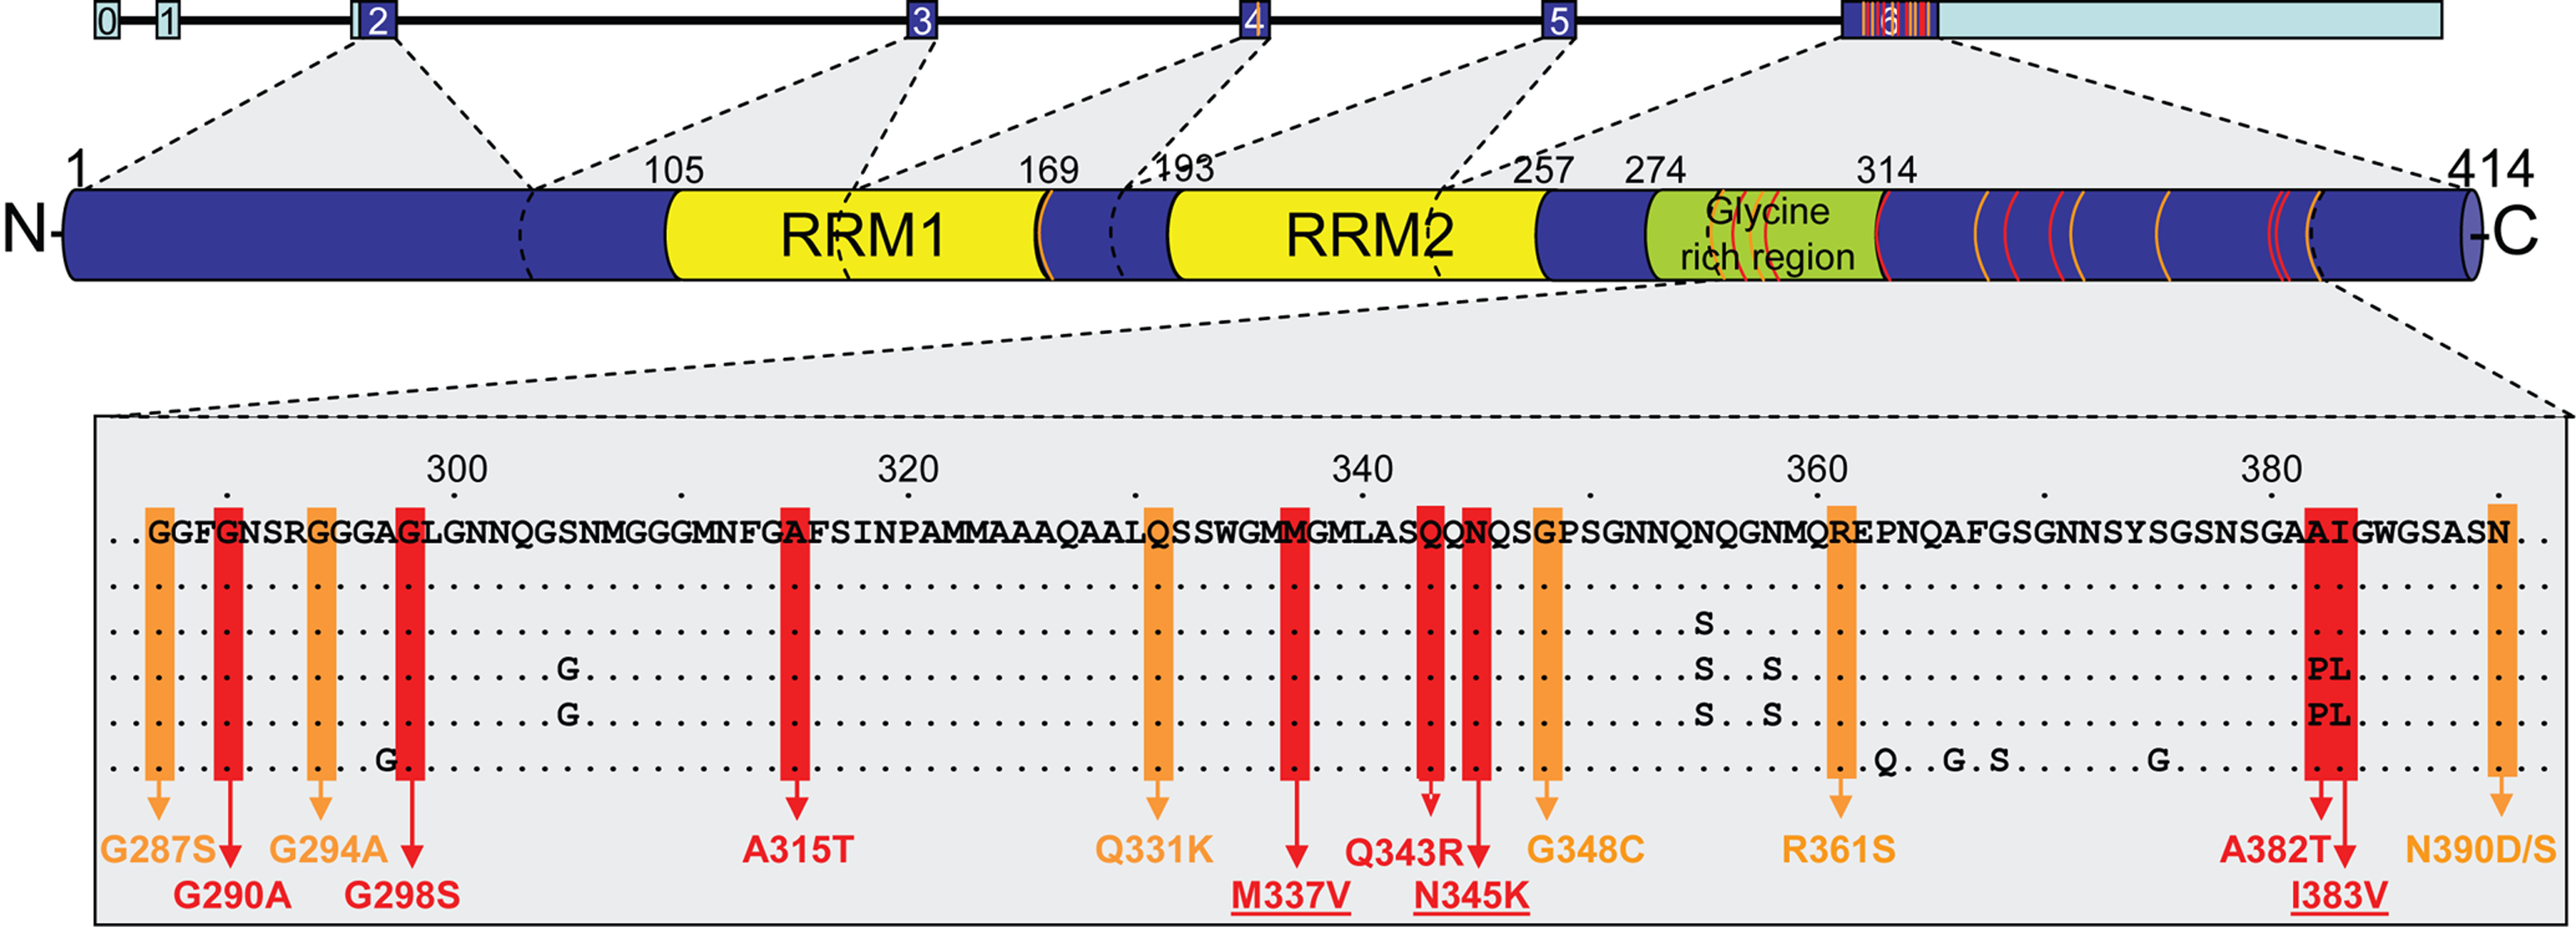 Overview of mutations identified to date in <i>TARDBP</i>.